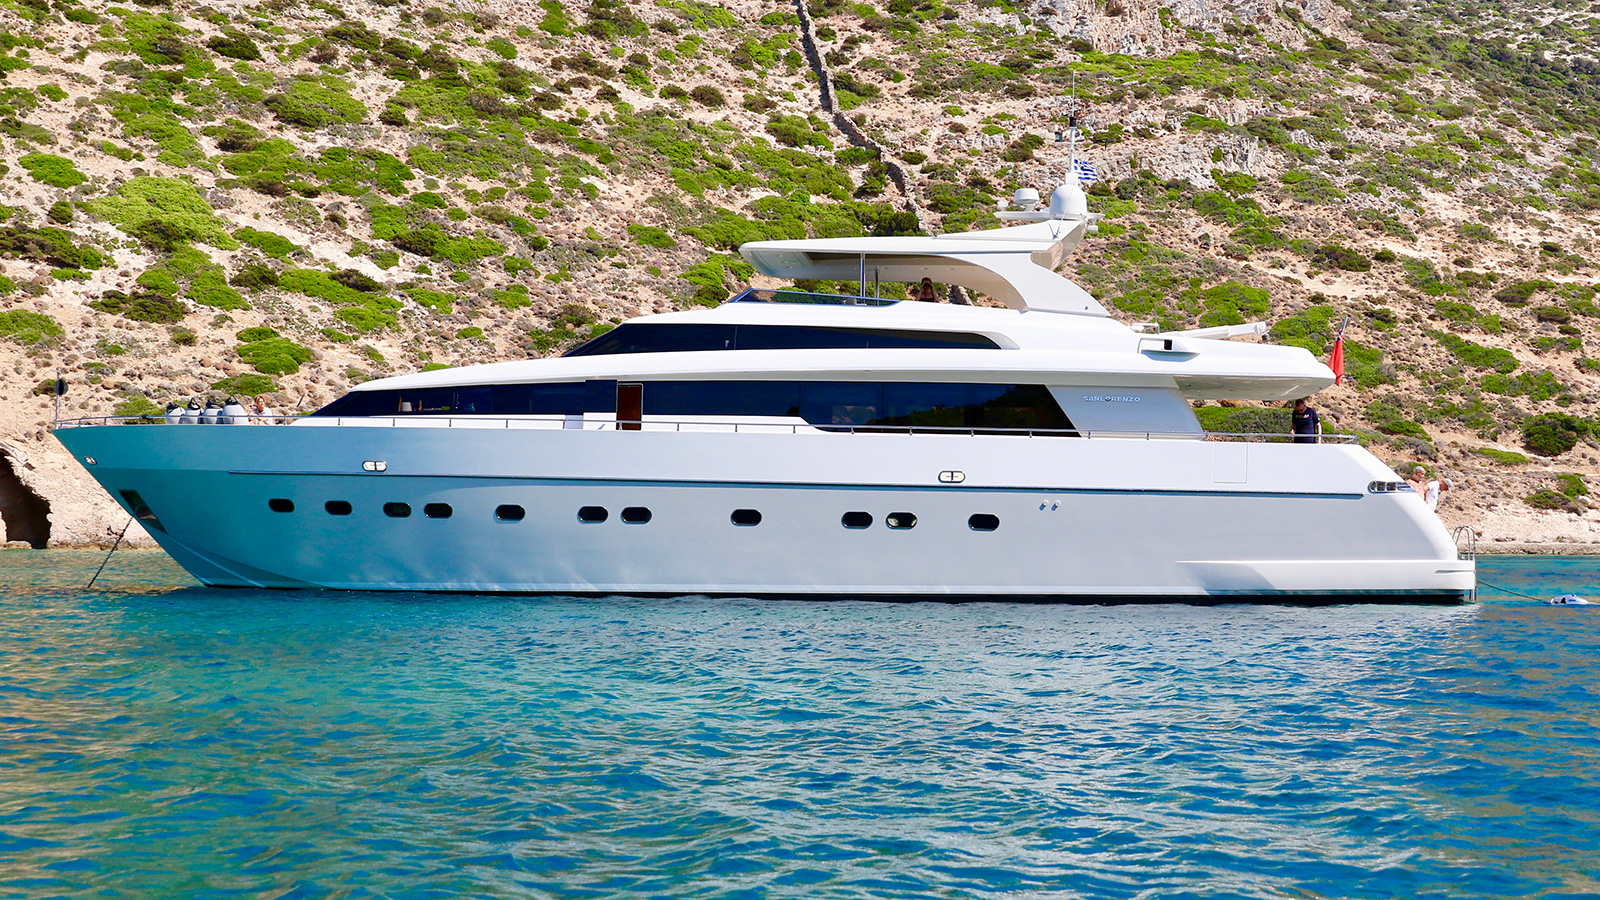 sanlorenzo-motor-yacht-panthours-for-sale